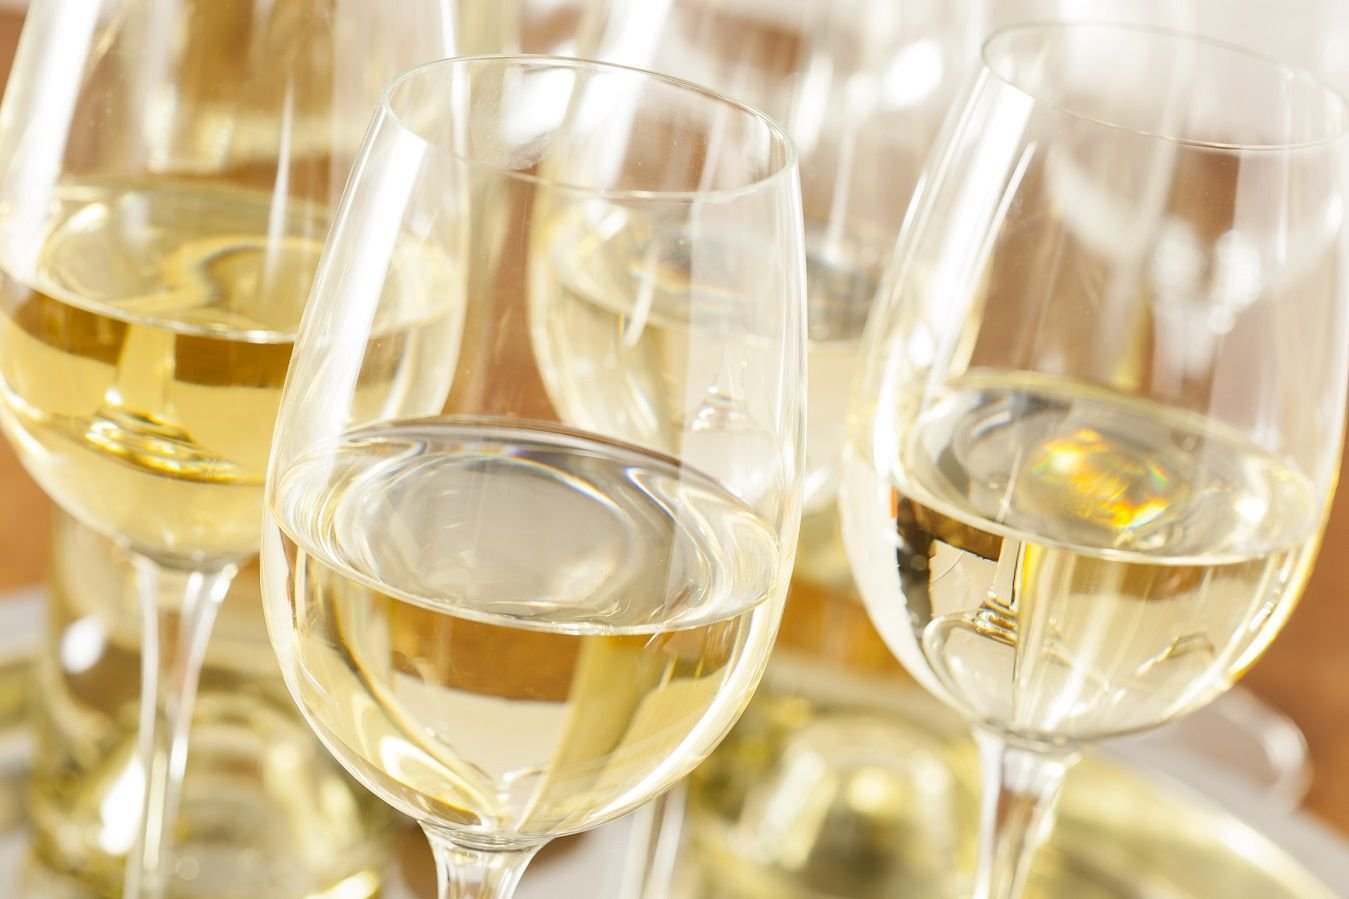 A preliminary study on the changes to dissolved CO2 in bottled white wine following pouring and during consumption – implications for winemakers